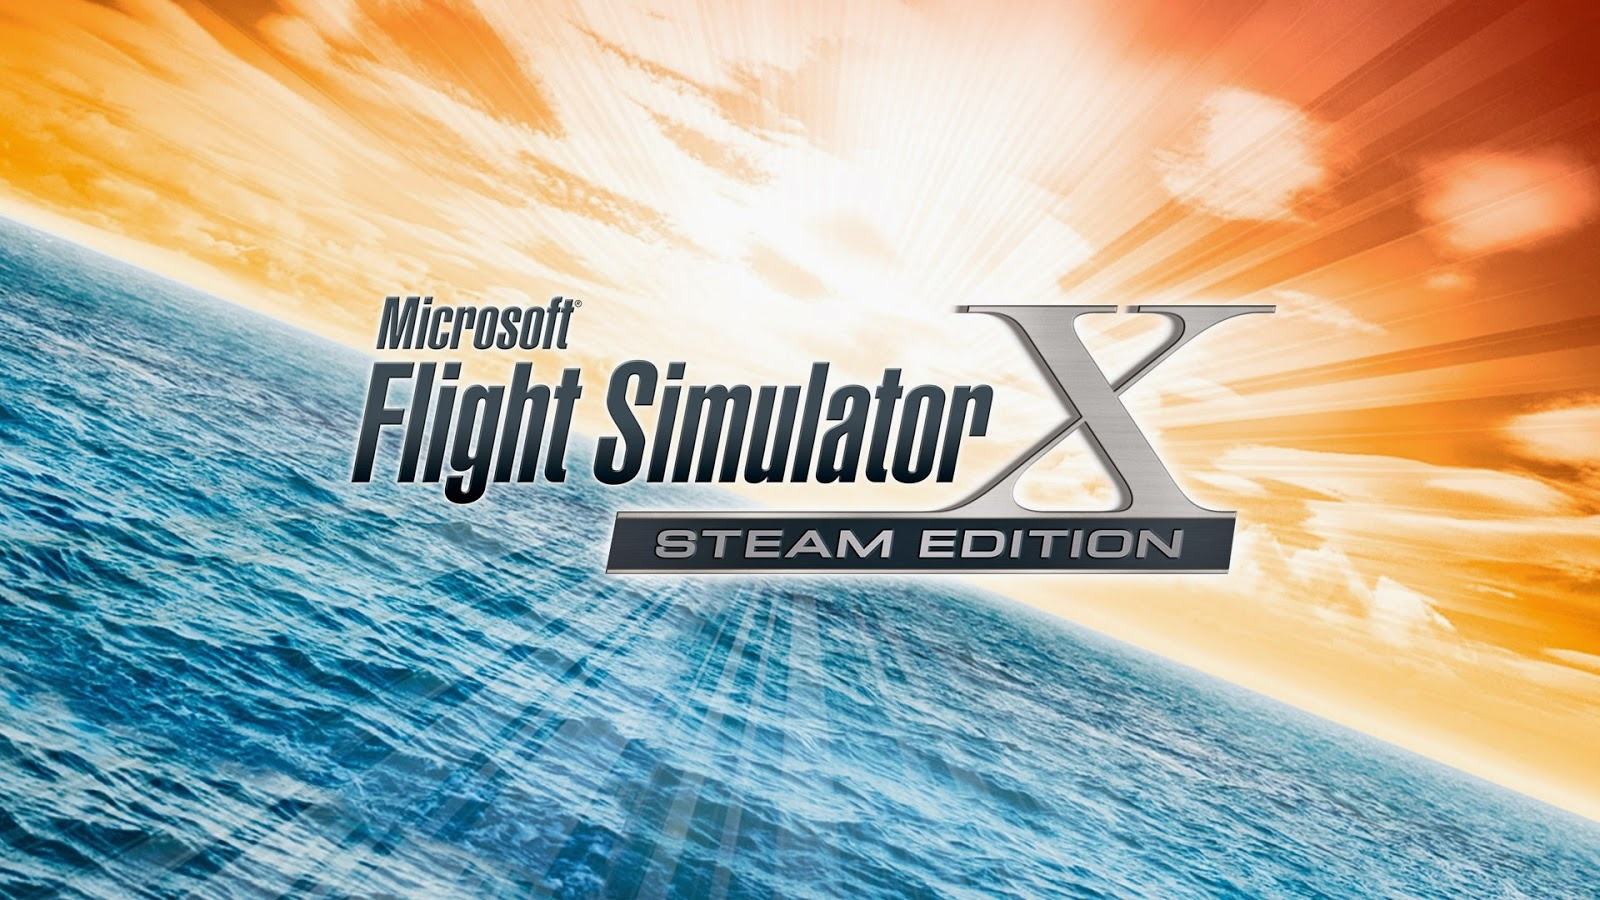 Microsoft Flight Simulator X Steam Edition Full PC